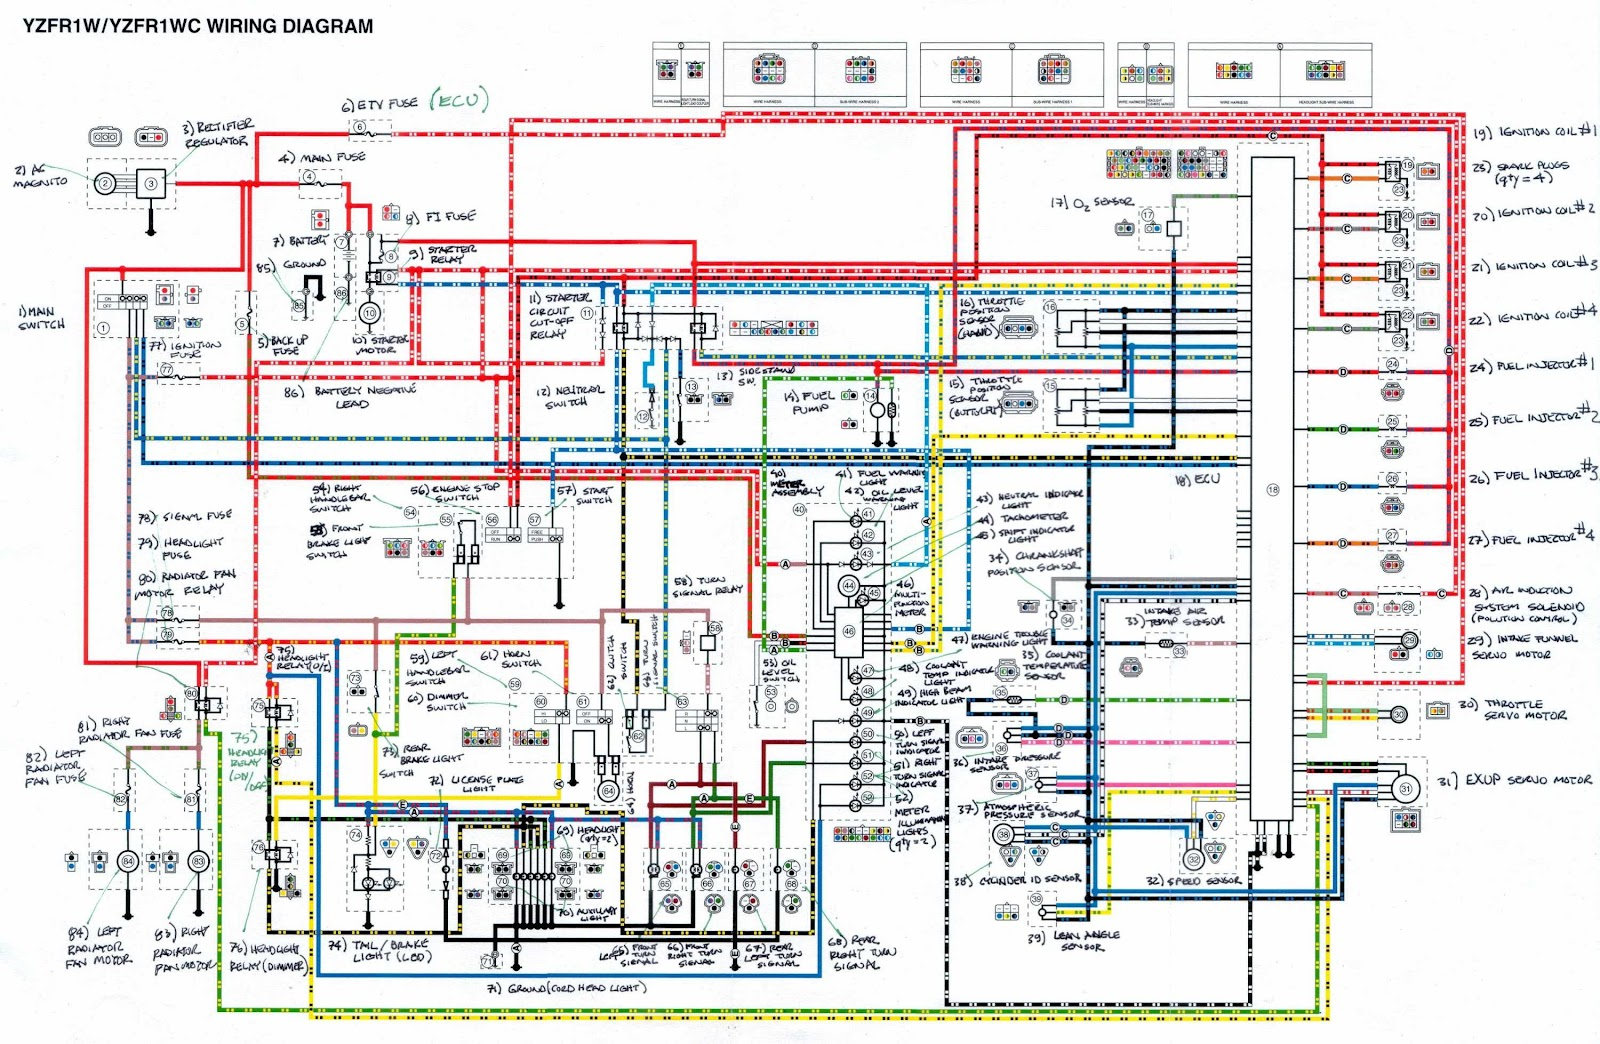 Wiring Diagram 2005 Honda Cbr 1000 Wire Data Schema Xl500r Yamaha Yzf R1 Motorcycle All About 1400 2010